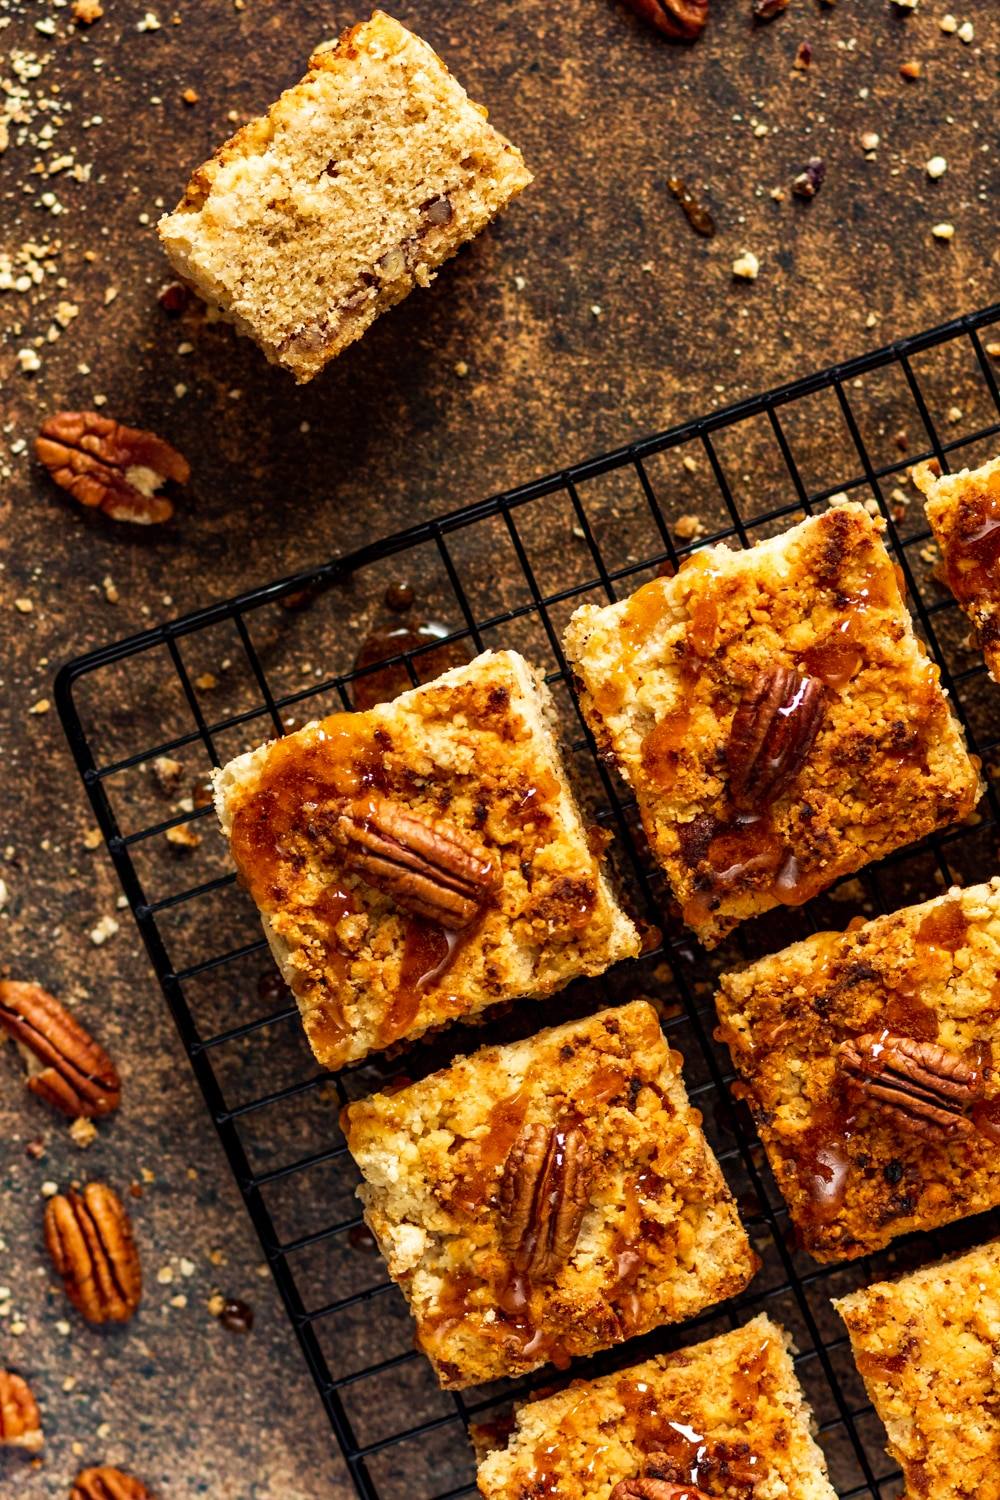 An overhead view of a couple of squares of gluten free coffee cake on a wire rack sitting on stone. There is one pecan on the top of each piece of coffee cake. One piece of coffee cake is set on its side on the stone.